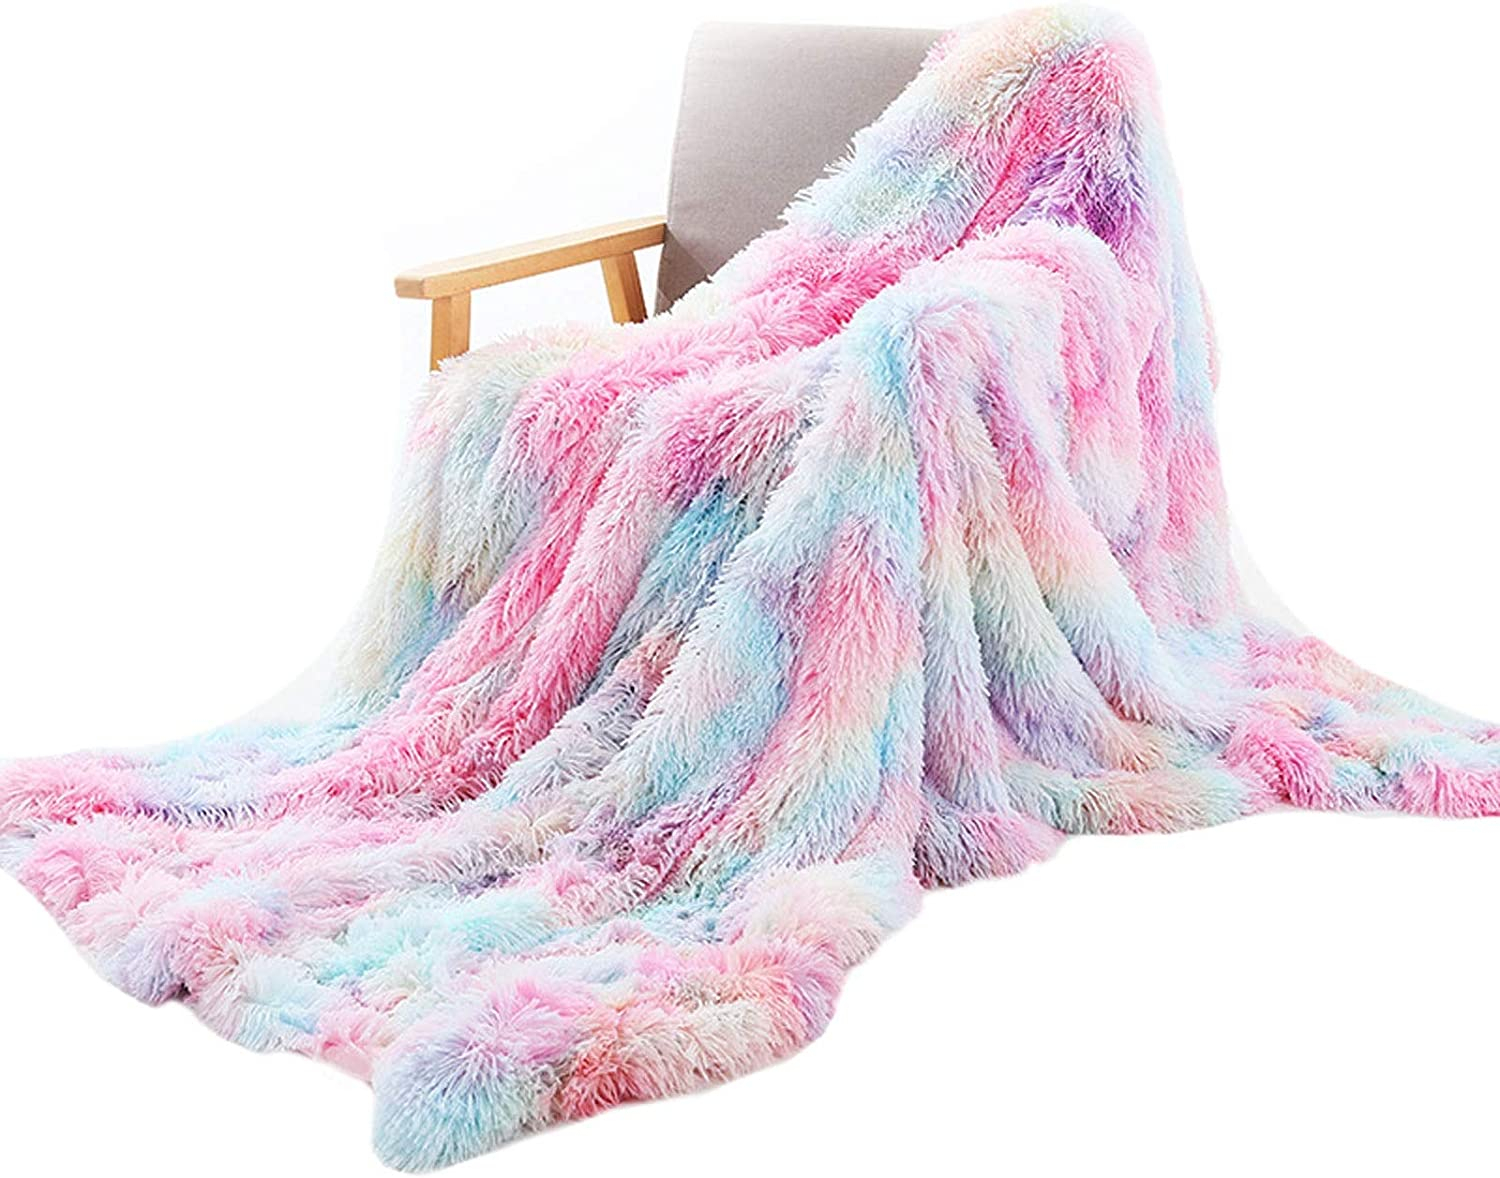 XFYJR Sale Ranking TOP6 price Chunky Throw Blanket - Large Cozy for Couch H Soft